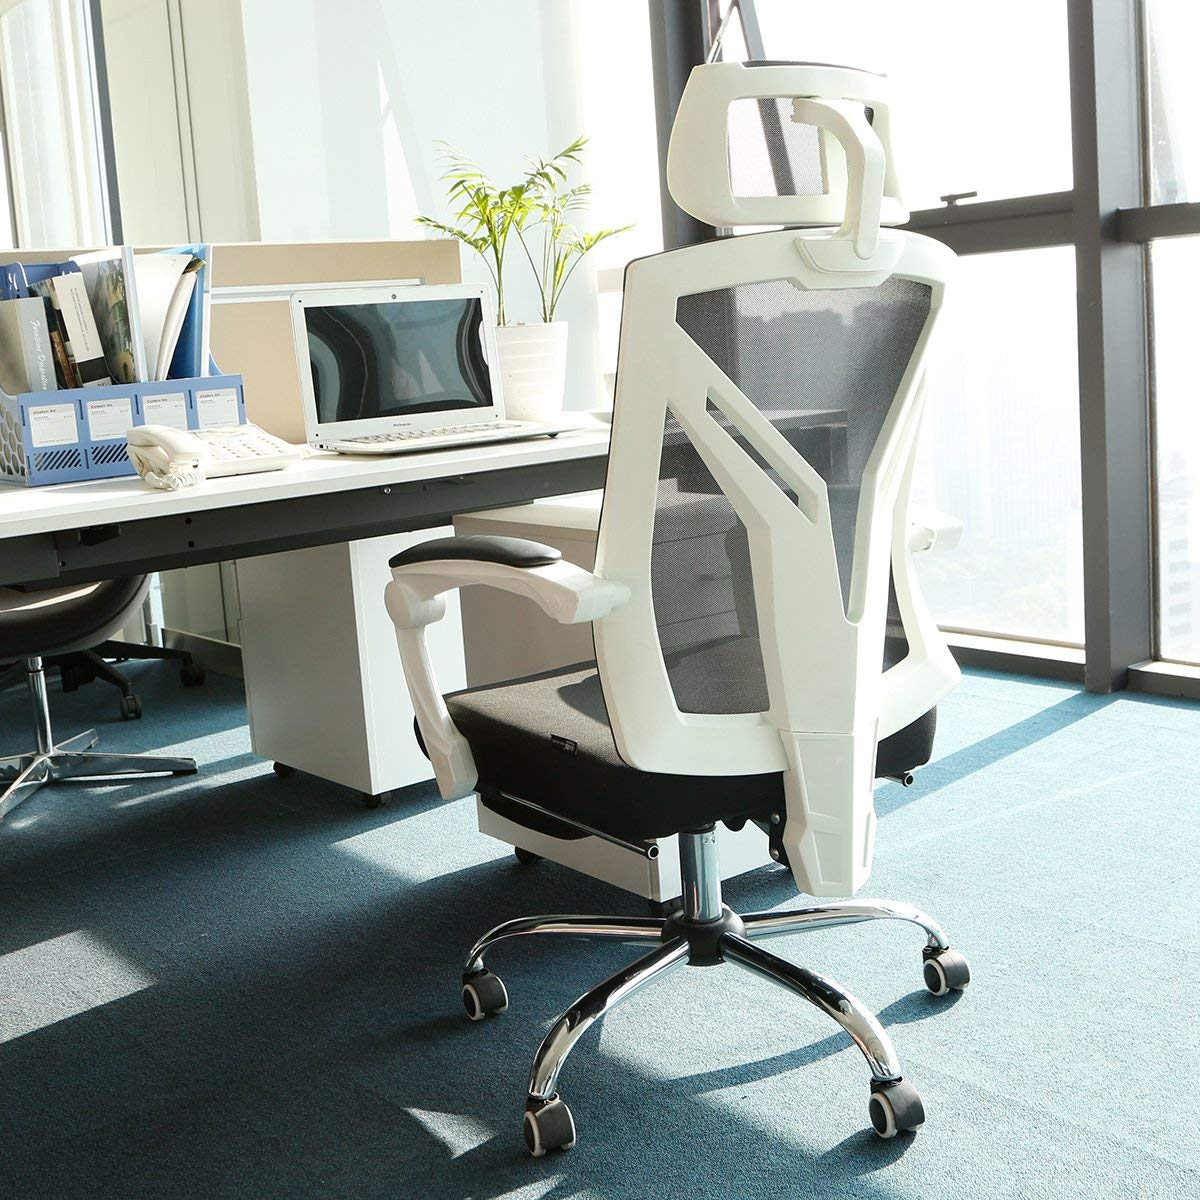 Hbada Ergonomic Office Chair - High-Back Desk Chair Racing Style with Lumbar Support - Height Adjustable Seat,Headrest- Breathable Mesh Back - Soft Foam Seat Cushion with Footrest, White by Hbada (Image #10)